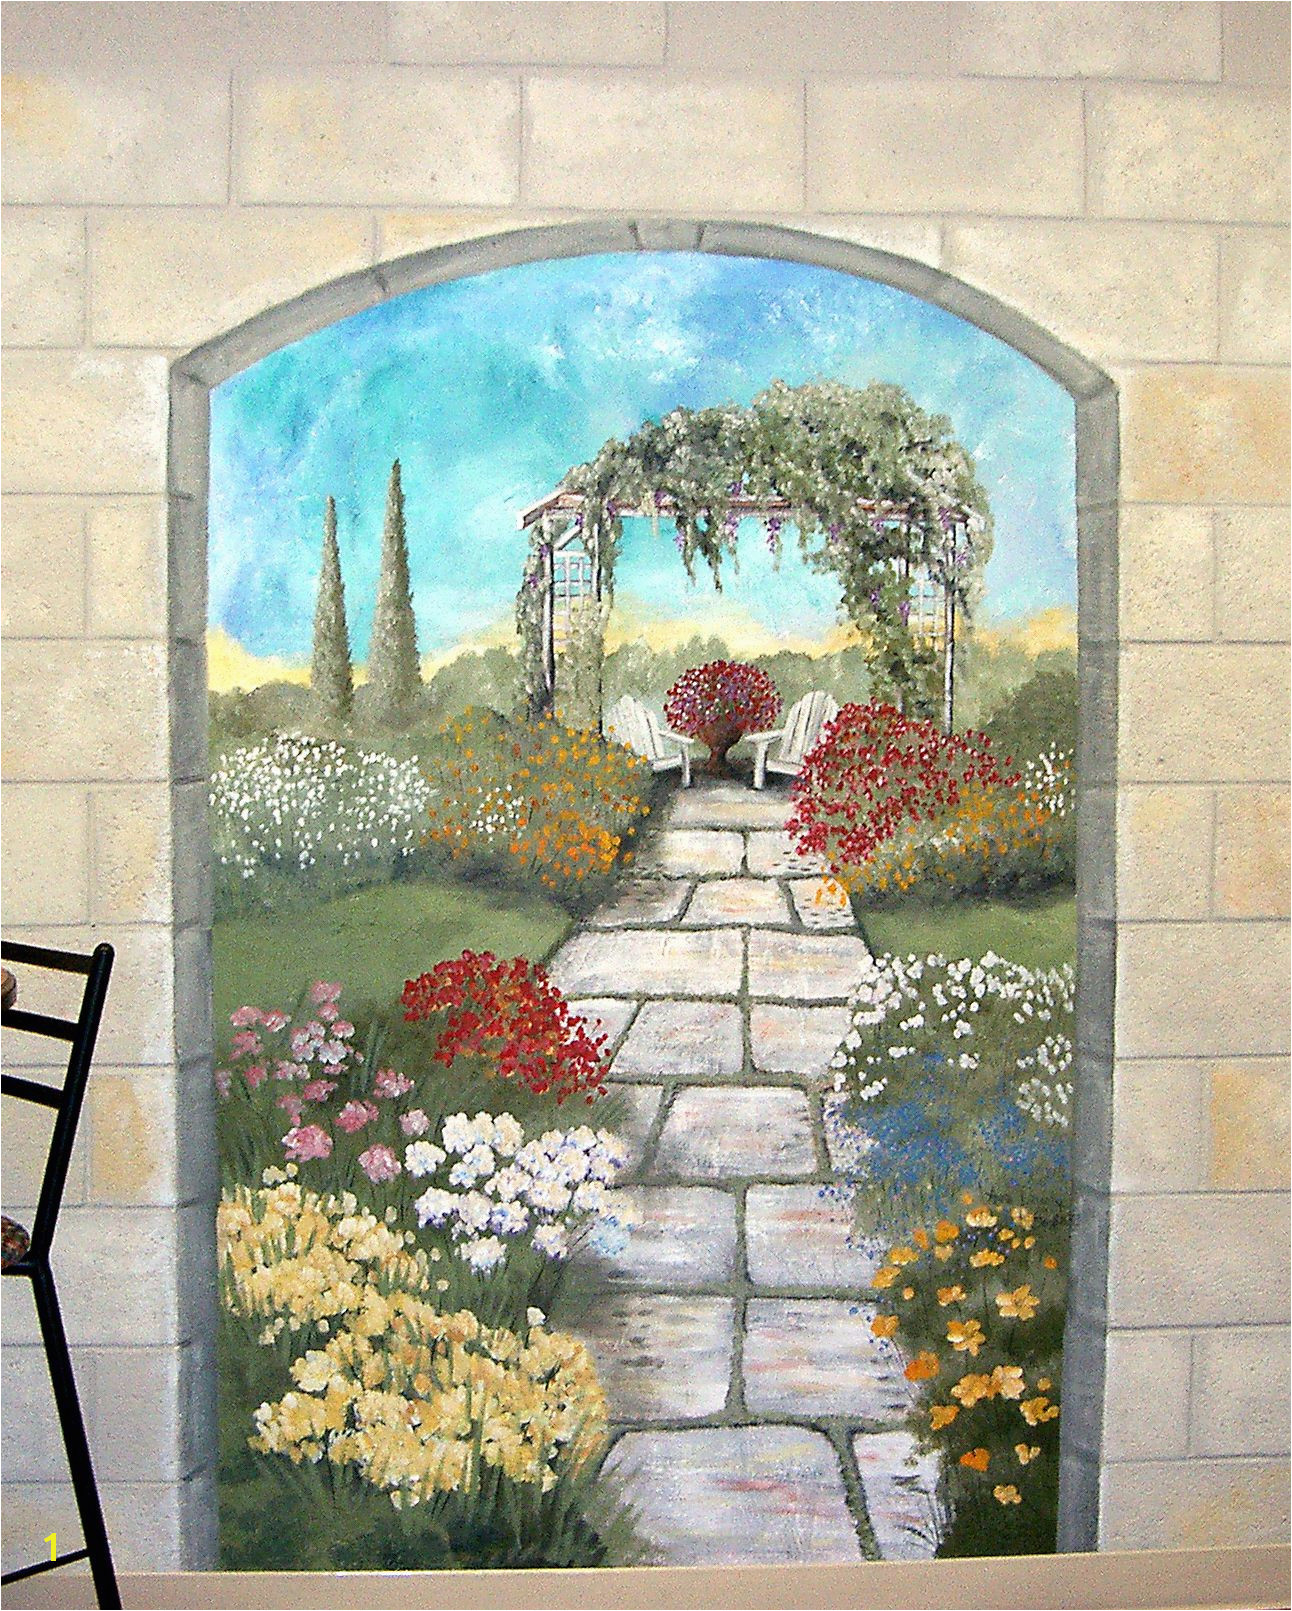 In the Night Garden Wall Mural Garden Mural On A Cement Block Wall Colorful Flower Garden Mural